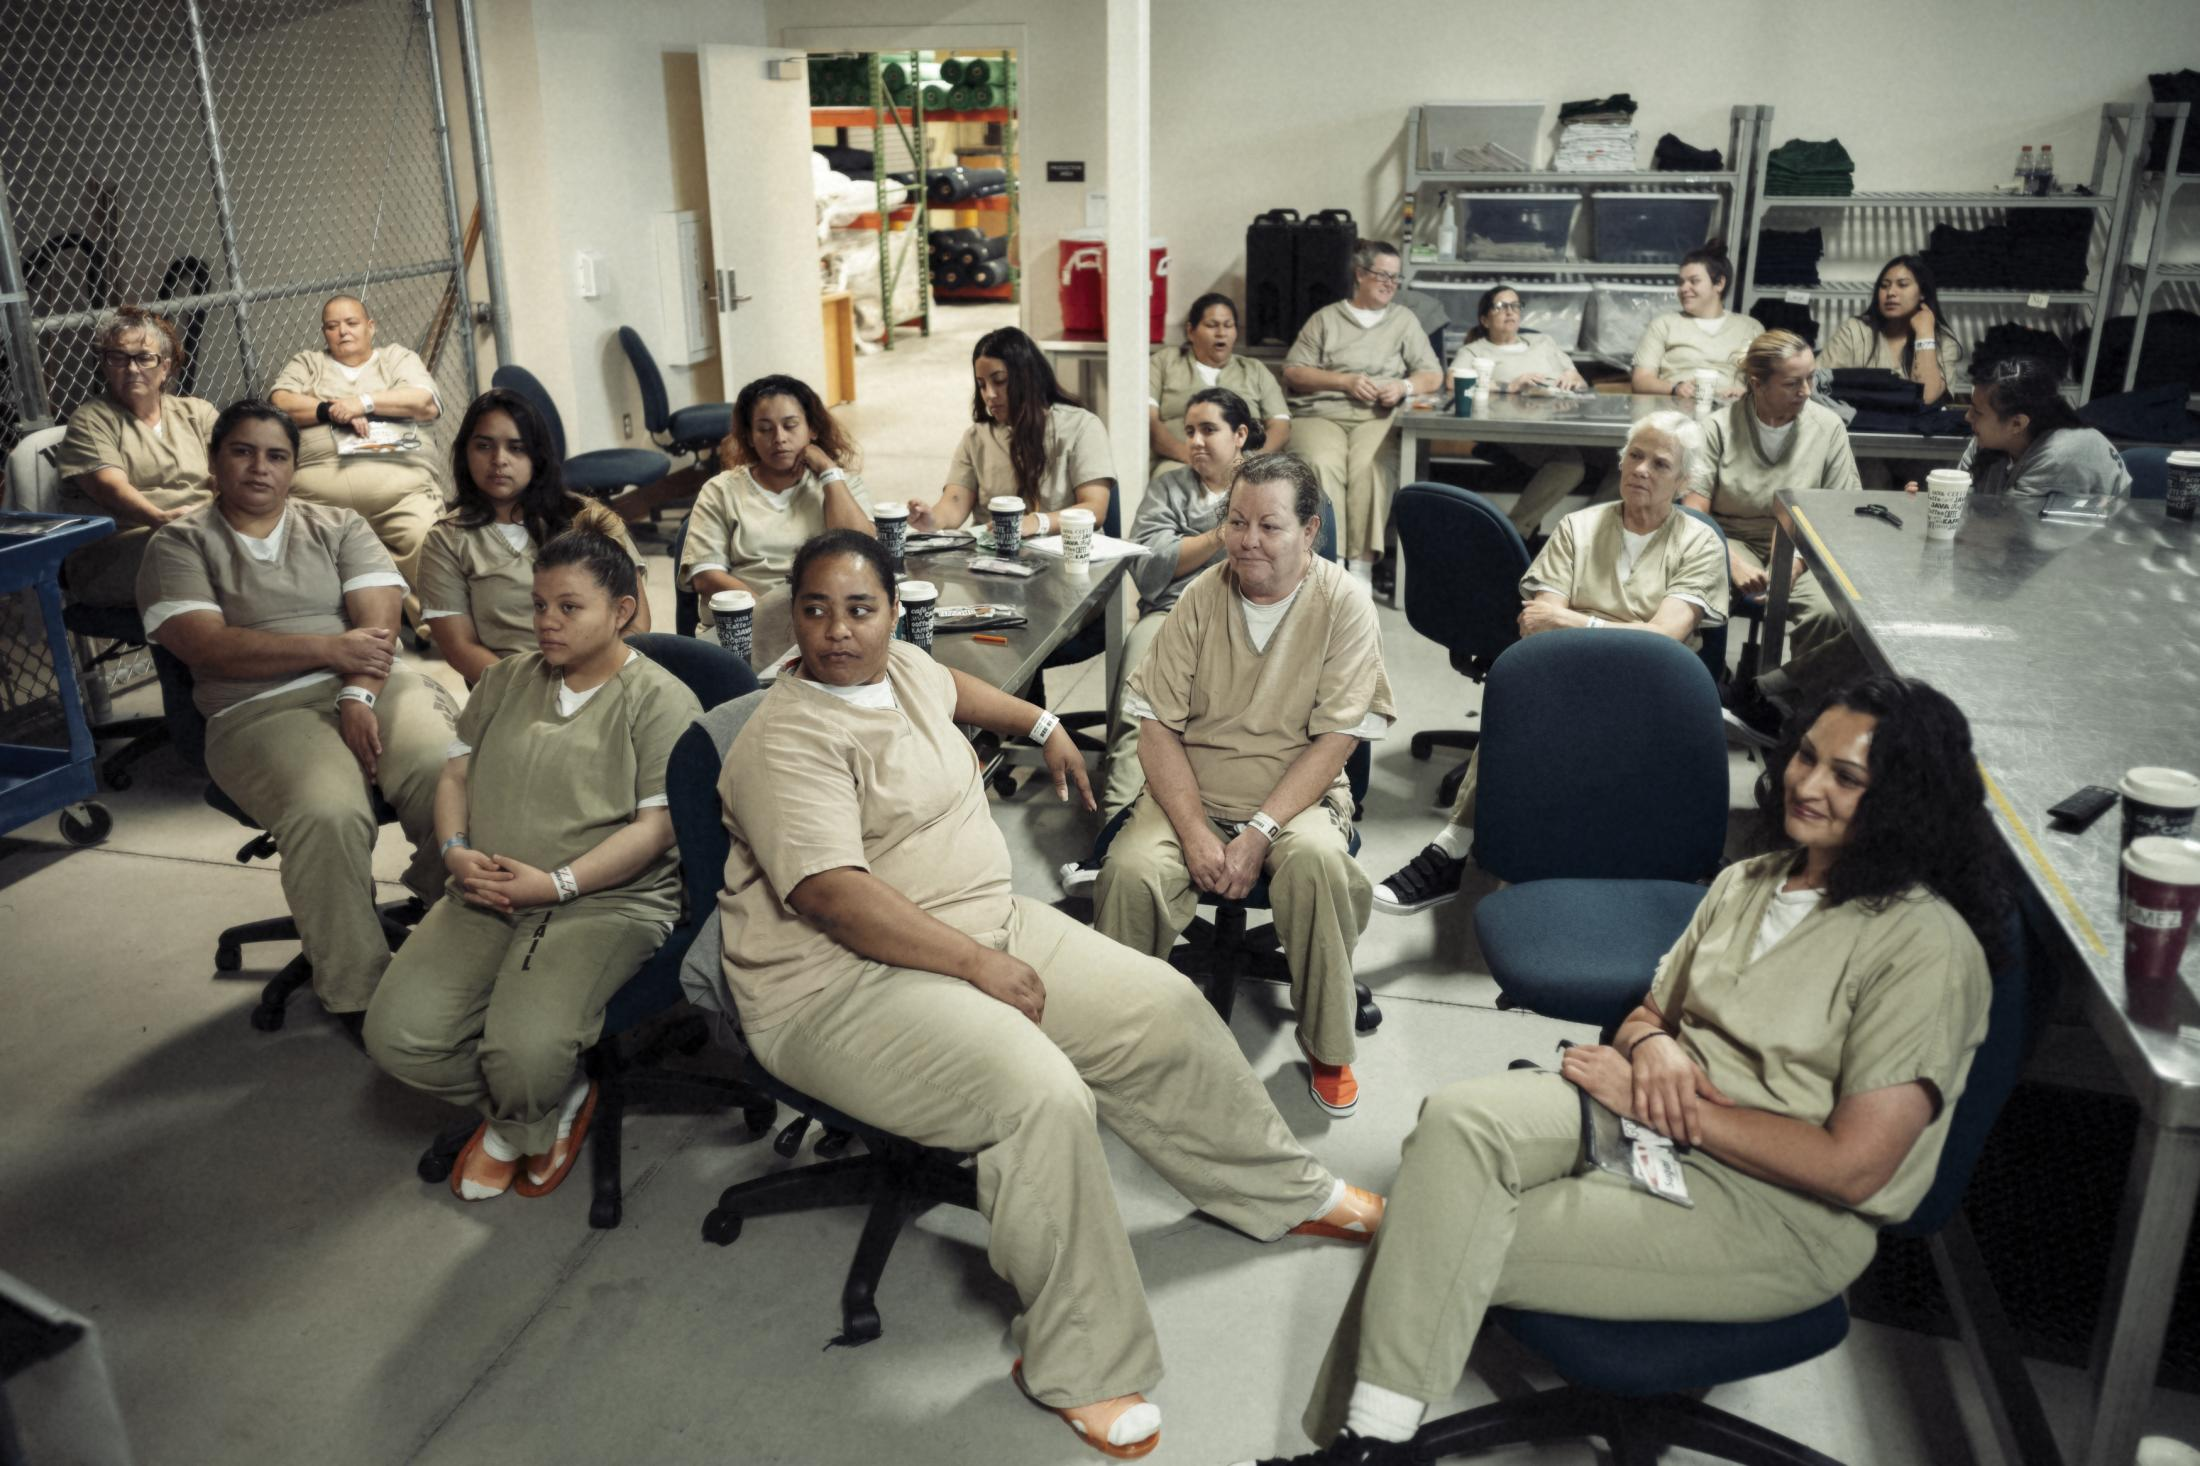 Women enrolled in honors/work programs at Las Colinas correctional facility get additional freedoms.  Women take a break from sewing prison uniforms to watch Downton Abbey.